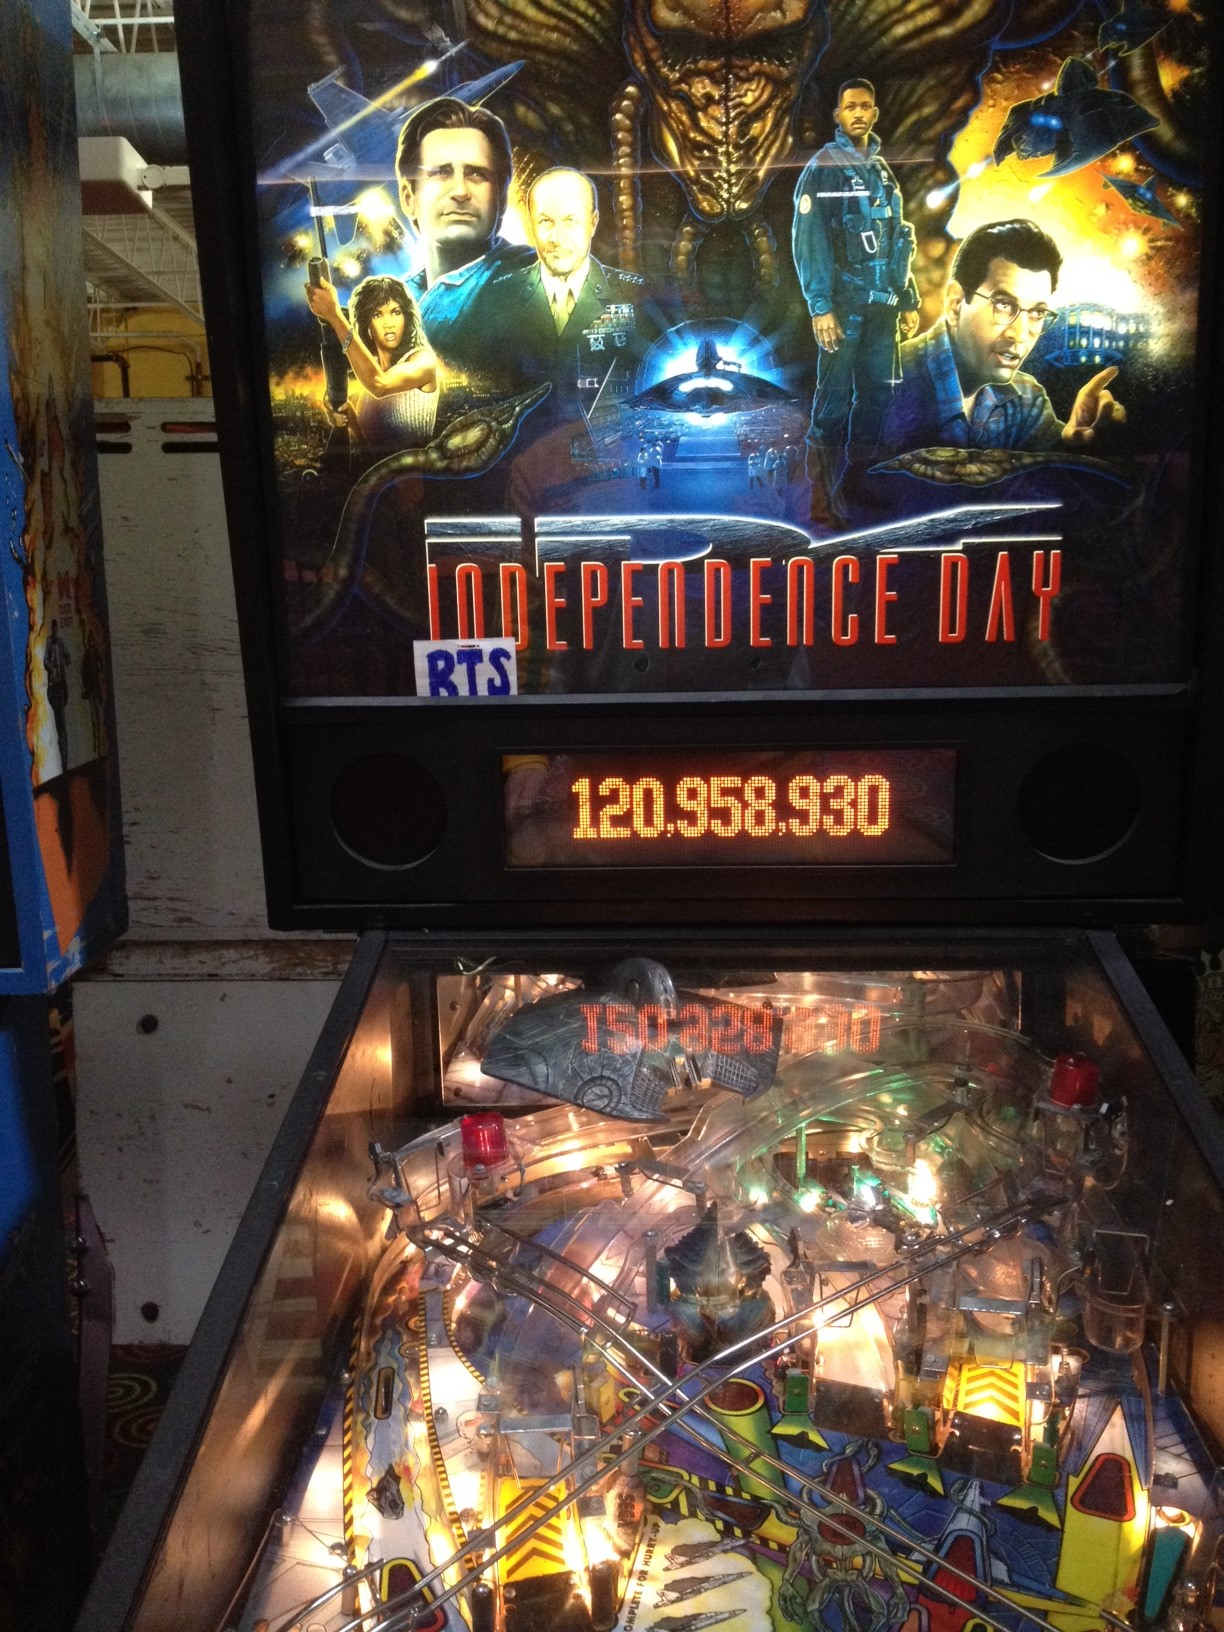 Independence Day 120,958,930 points